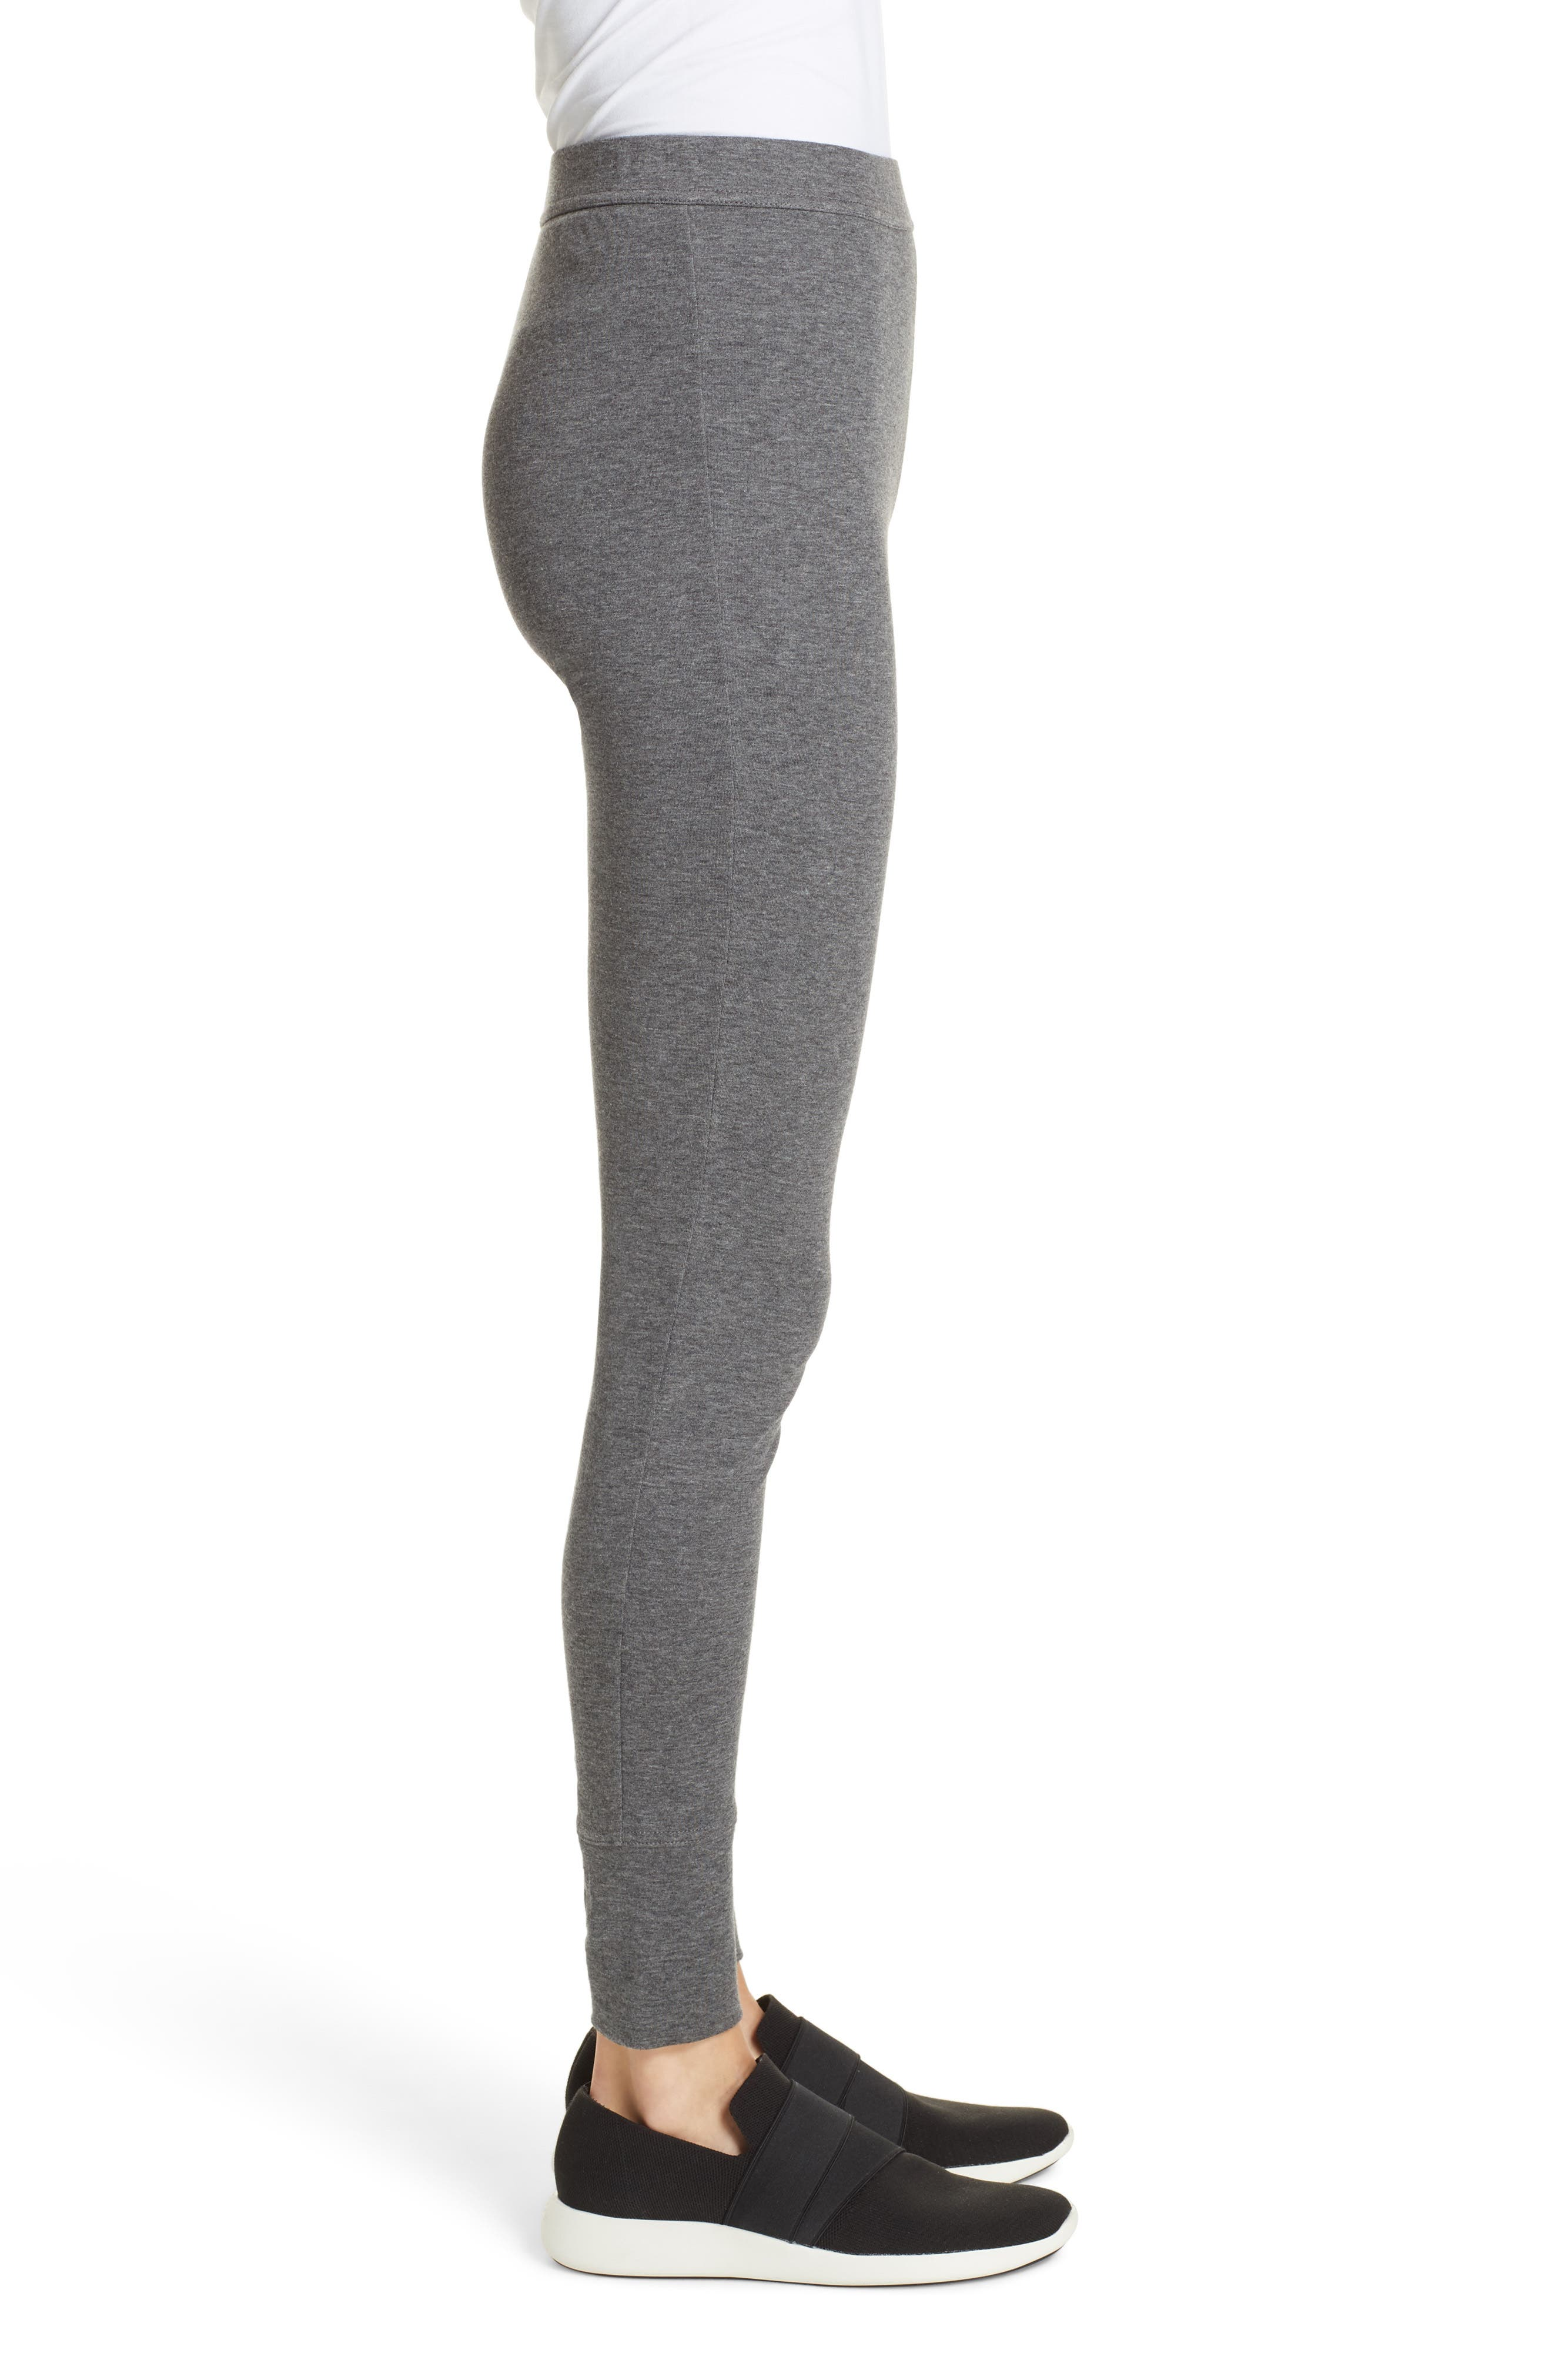 Heathered Cotton Blend Leggings,                             Alternate thumbnail 3, color,                             HEATHER CHARCOAL